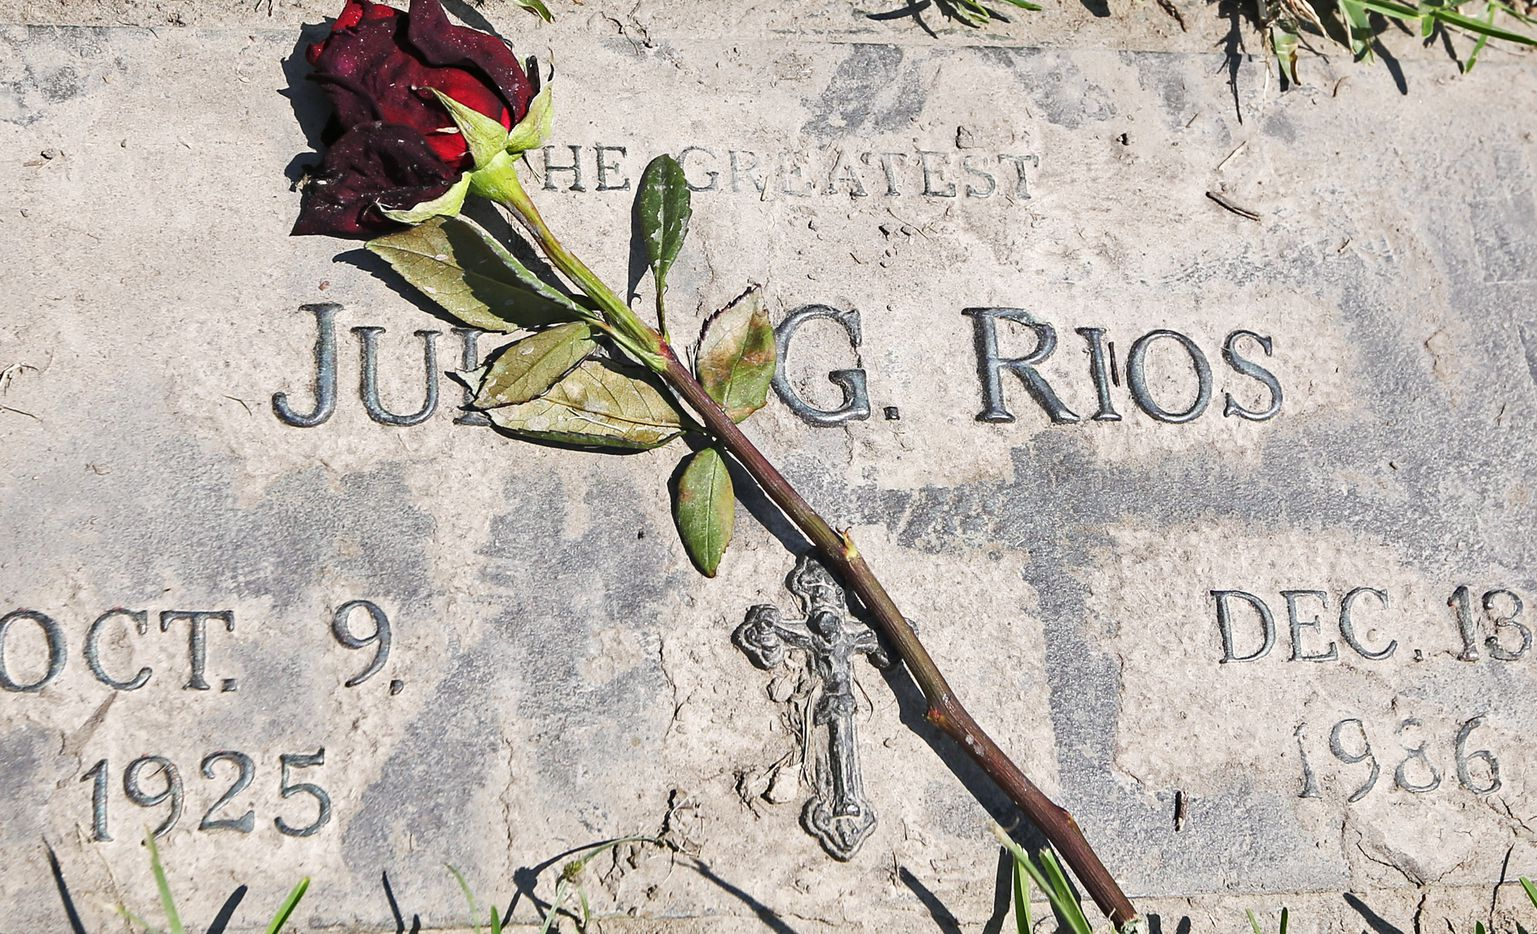 Mud and debris from the floodwater is seen on a grave marker at Hollywood Cemetery near downtown Houston on Sunday, September 10, 2017.